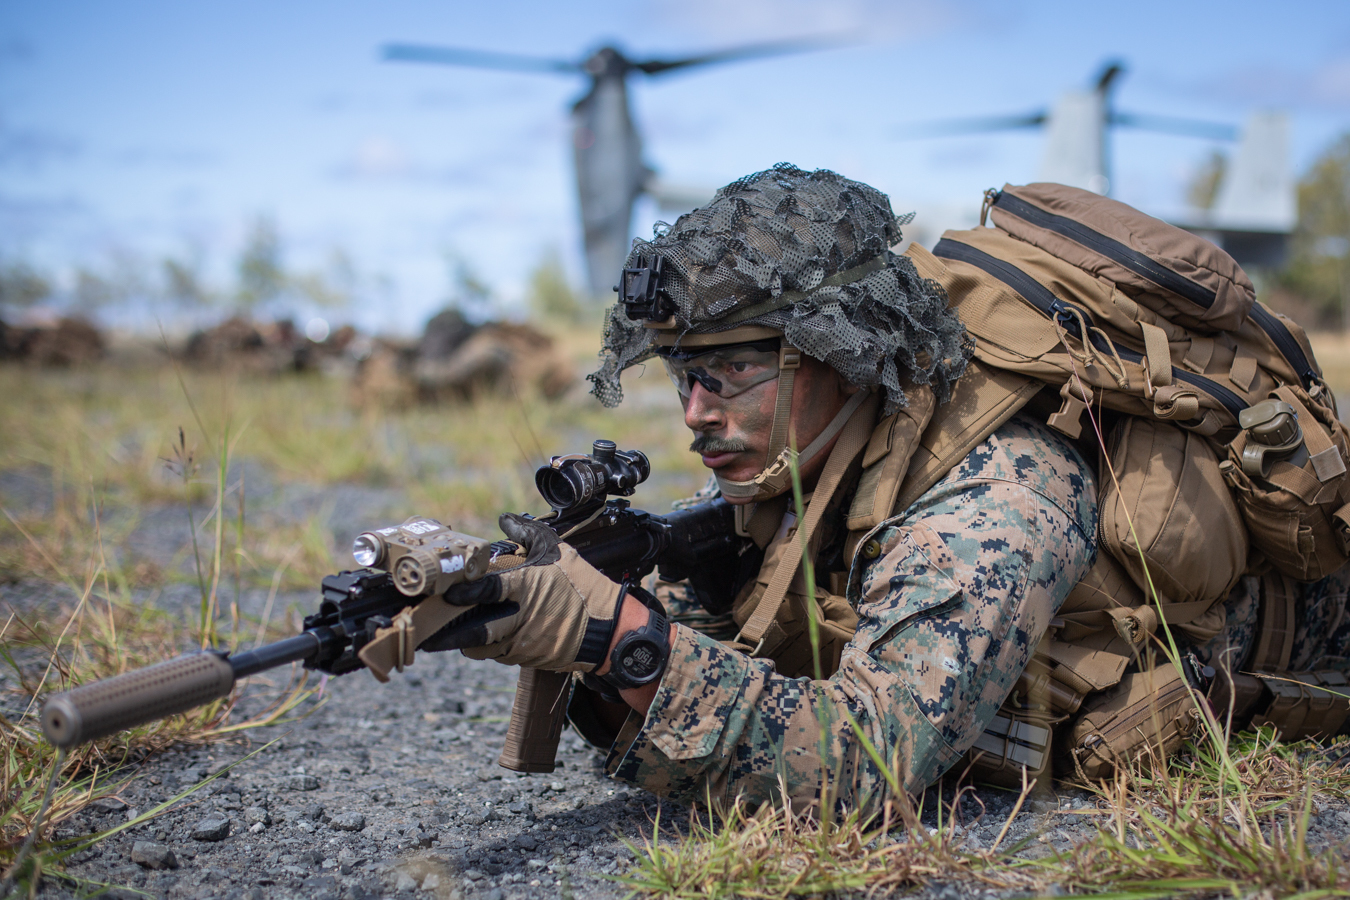 U.S. Marine Corps Cpl. Kevin Hernandez, a rifleman with 1st Battalion, 3d Marines, 3d Marine Division, provides security during an air assault at Marine Corps Training Area Bellows, Hawaii, July 9. (Cpl. Alexis Moradian/Marine Corps)